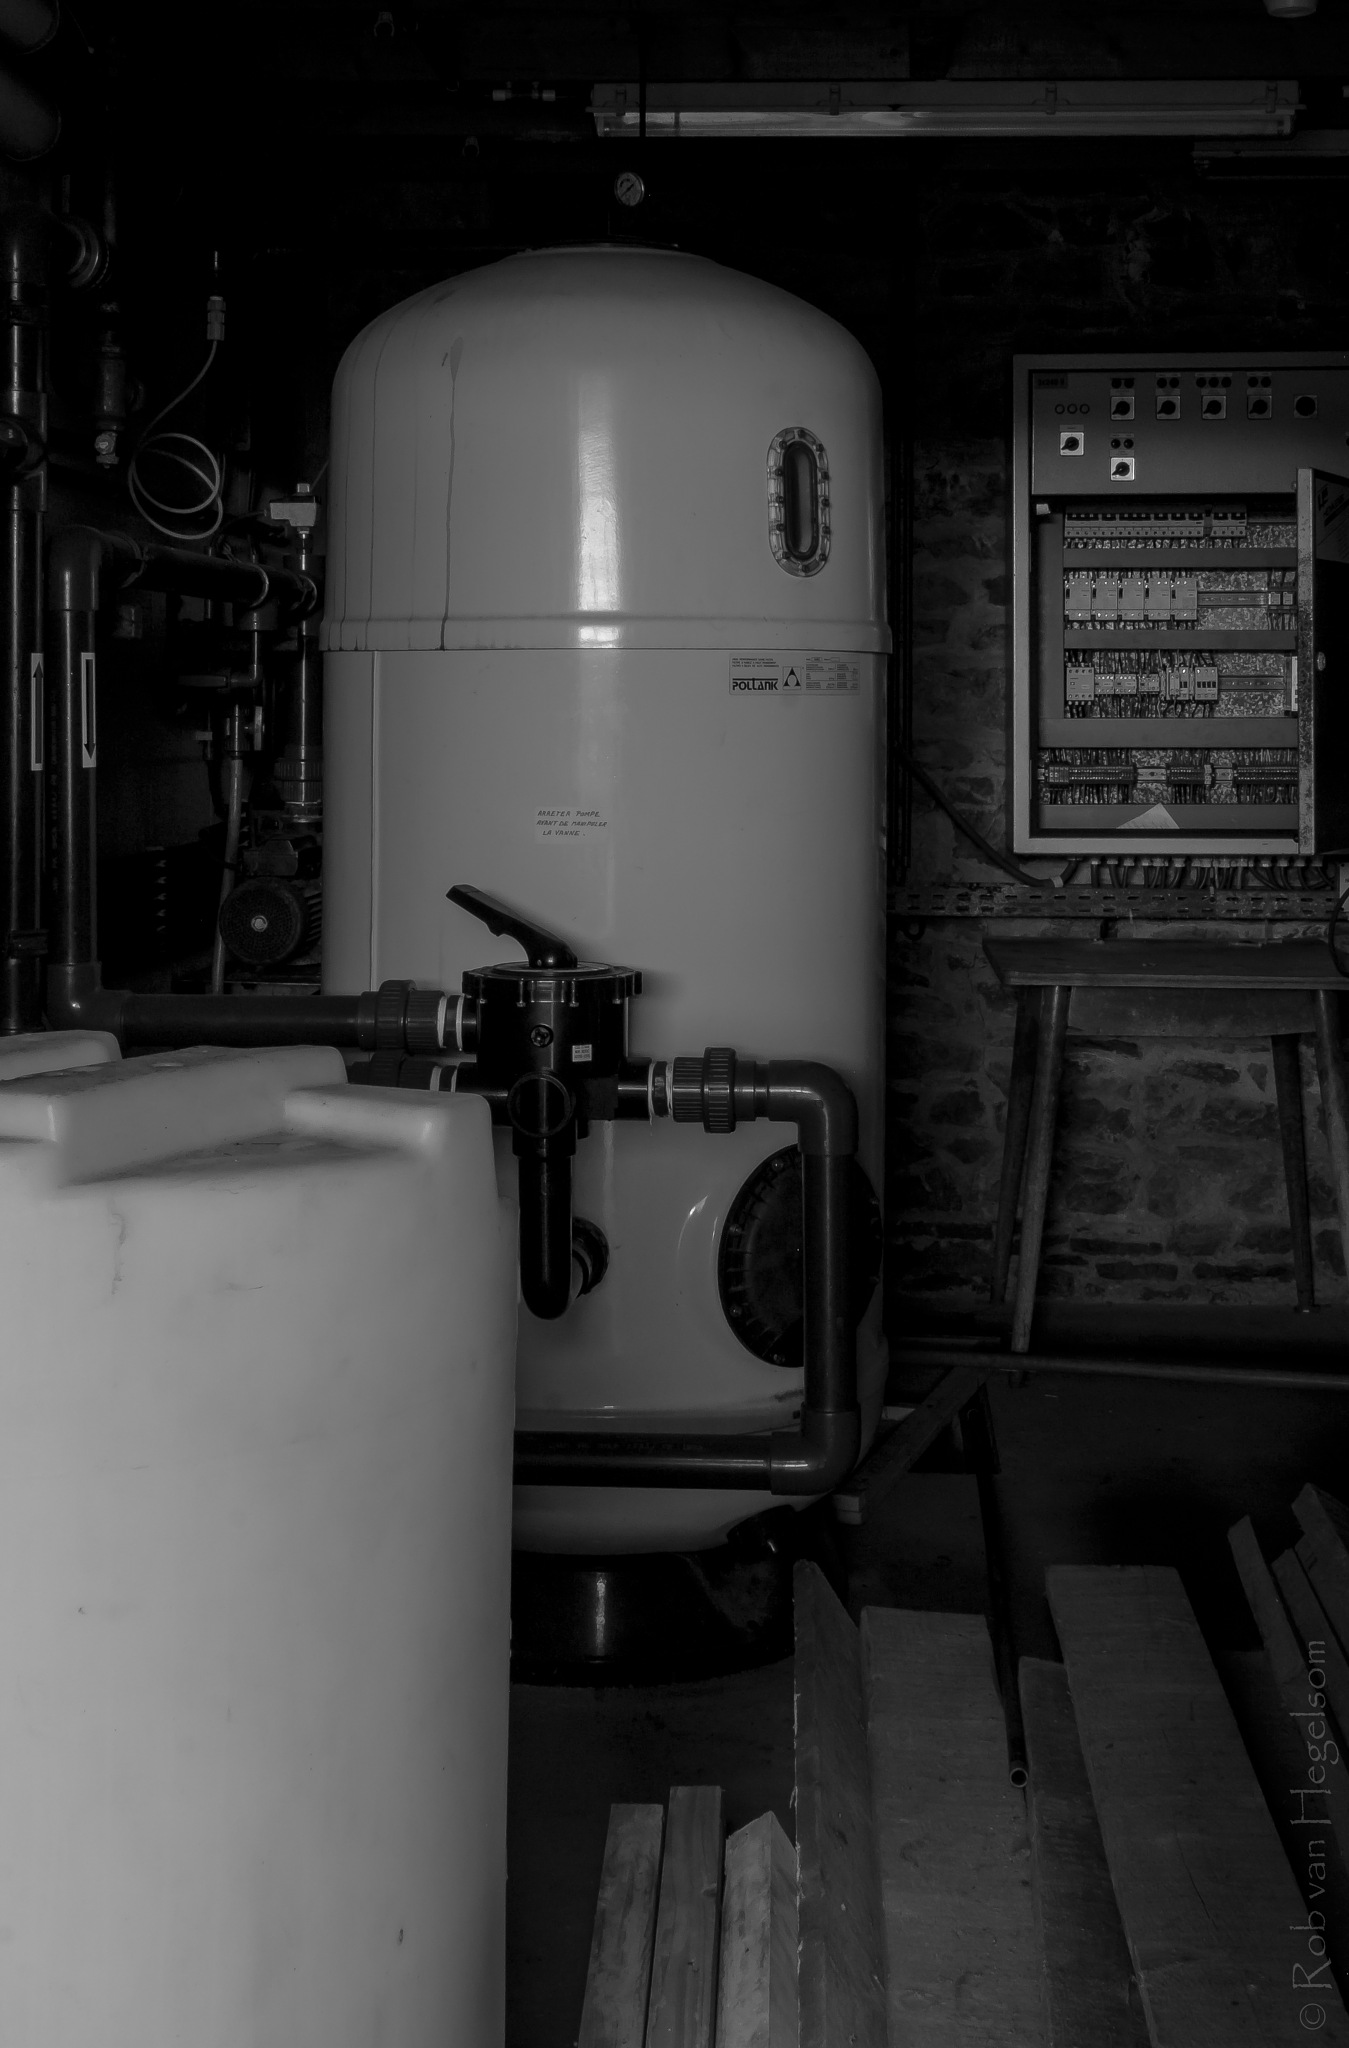 The boiler room by rvanhegelsom